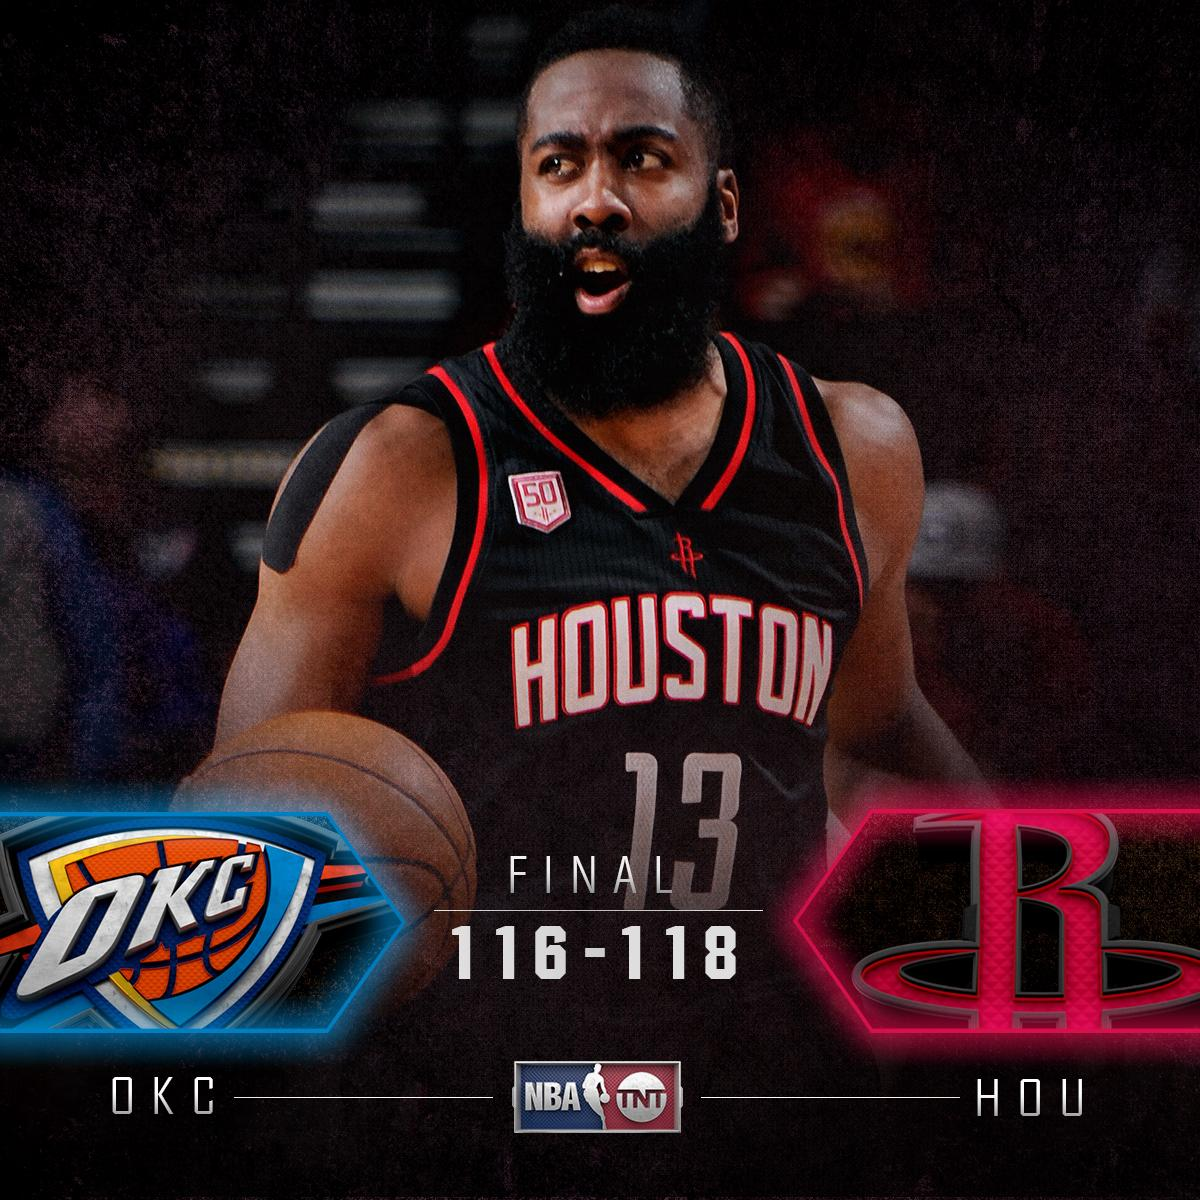 The Beard posts 26 Pts, 12 Ast and 8 Reb as the @HoustonRockets hold off Russell Westbrook and the OKC Thunder! https://t.co/wGumQWoZkt